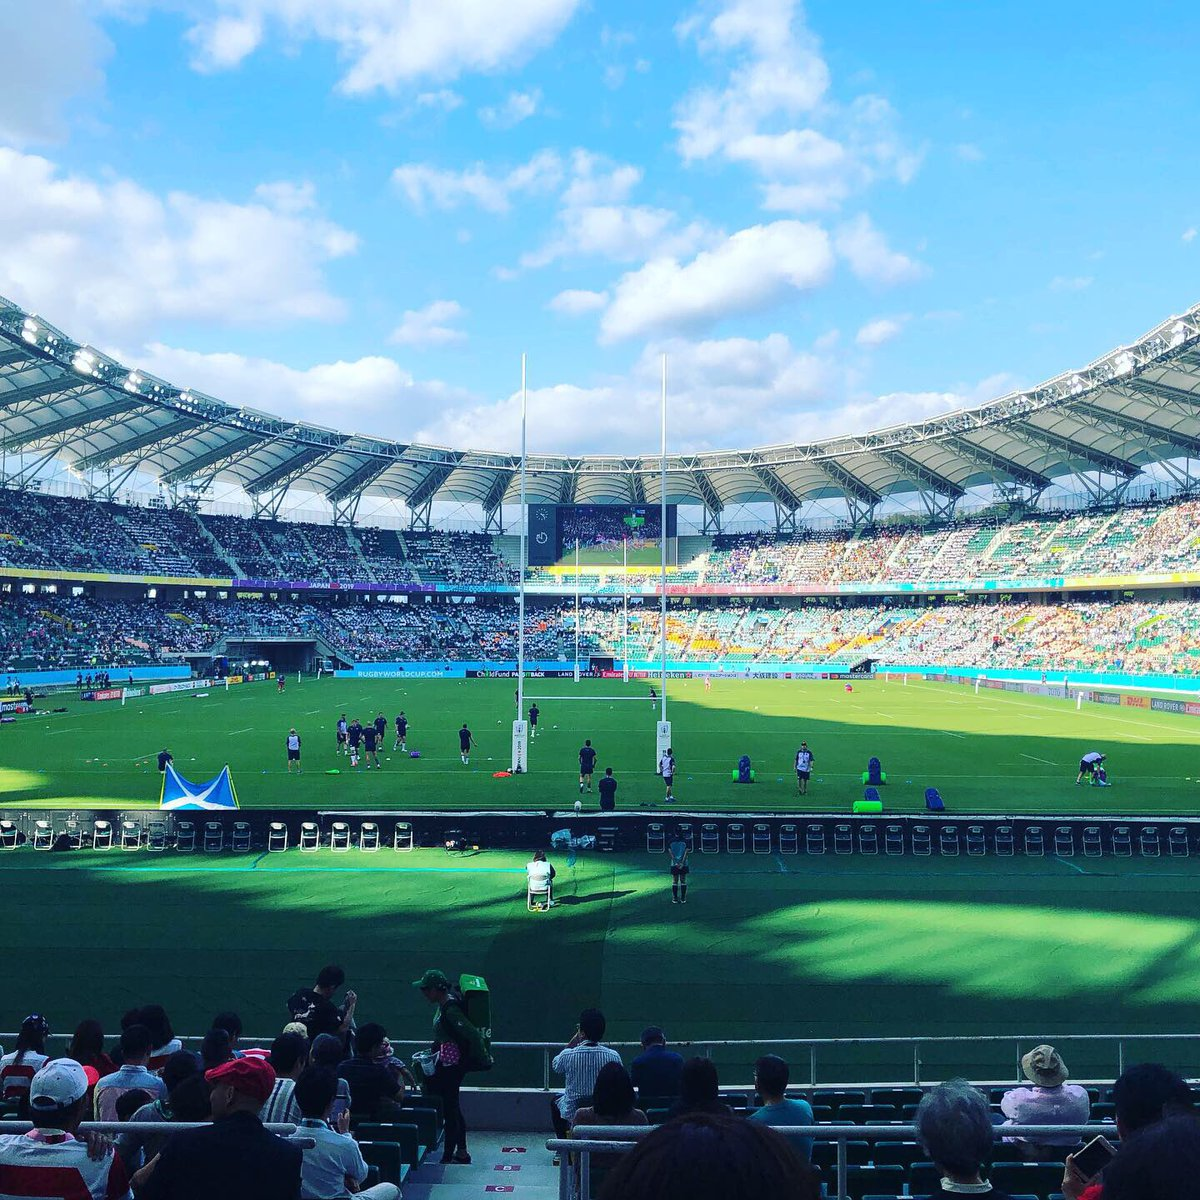 @scottcummings96 @RugbySco It was a real once-in-a-lifetime experience to watch #SCOvRUS at #RWCShizuoka last week🏉We loved your amazing performances throughout #RWC2019 and hope you'll have a chance to visit Japan again🥰🇯🇵Good luck in the new season with Warriors🤞🏻✨🏴󠁧󠁢󠁳󠁣󠁴󠁿💙